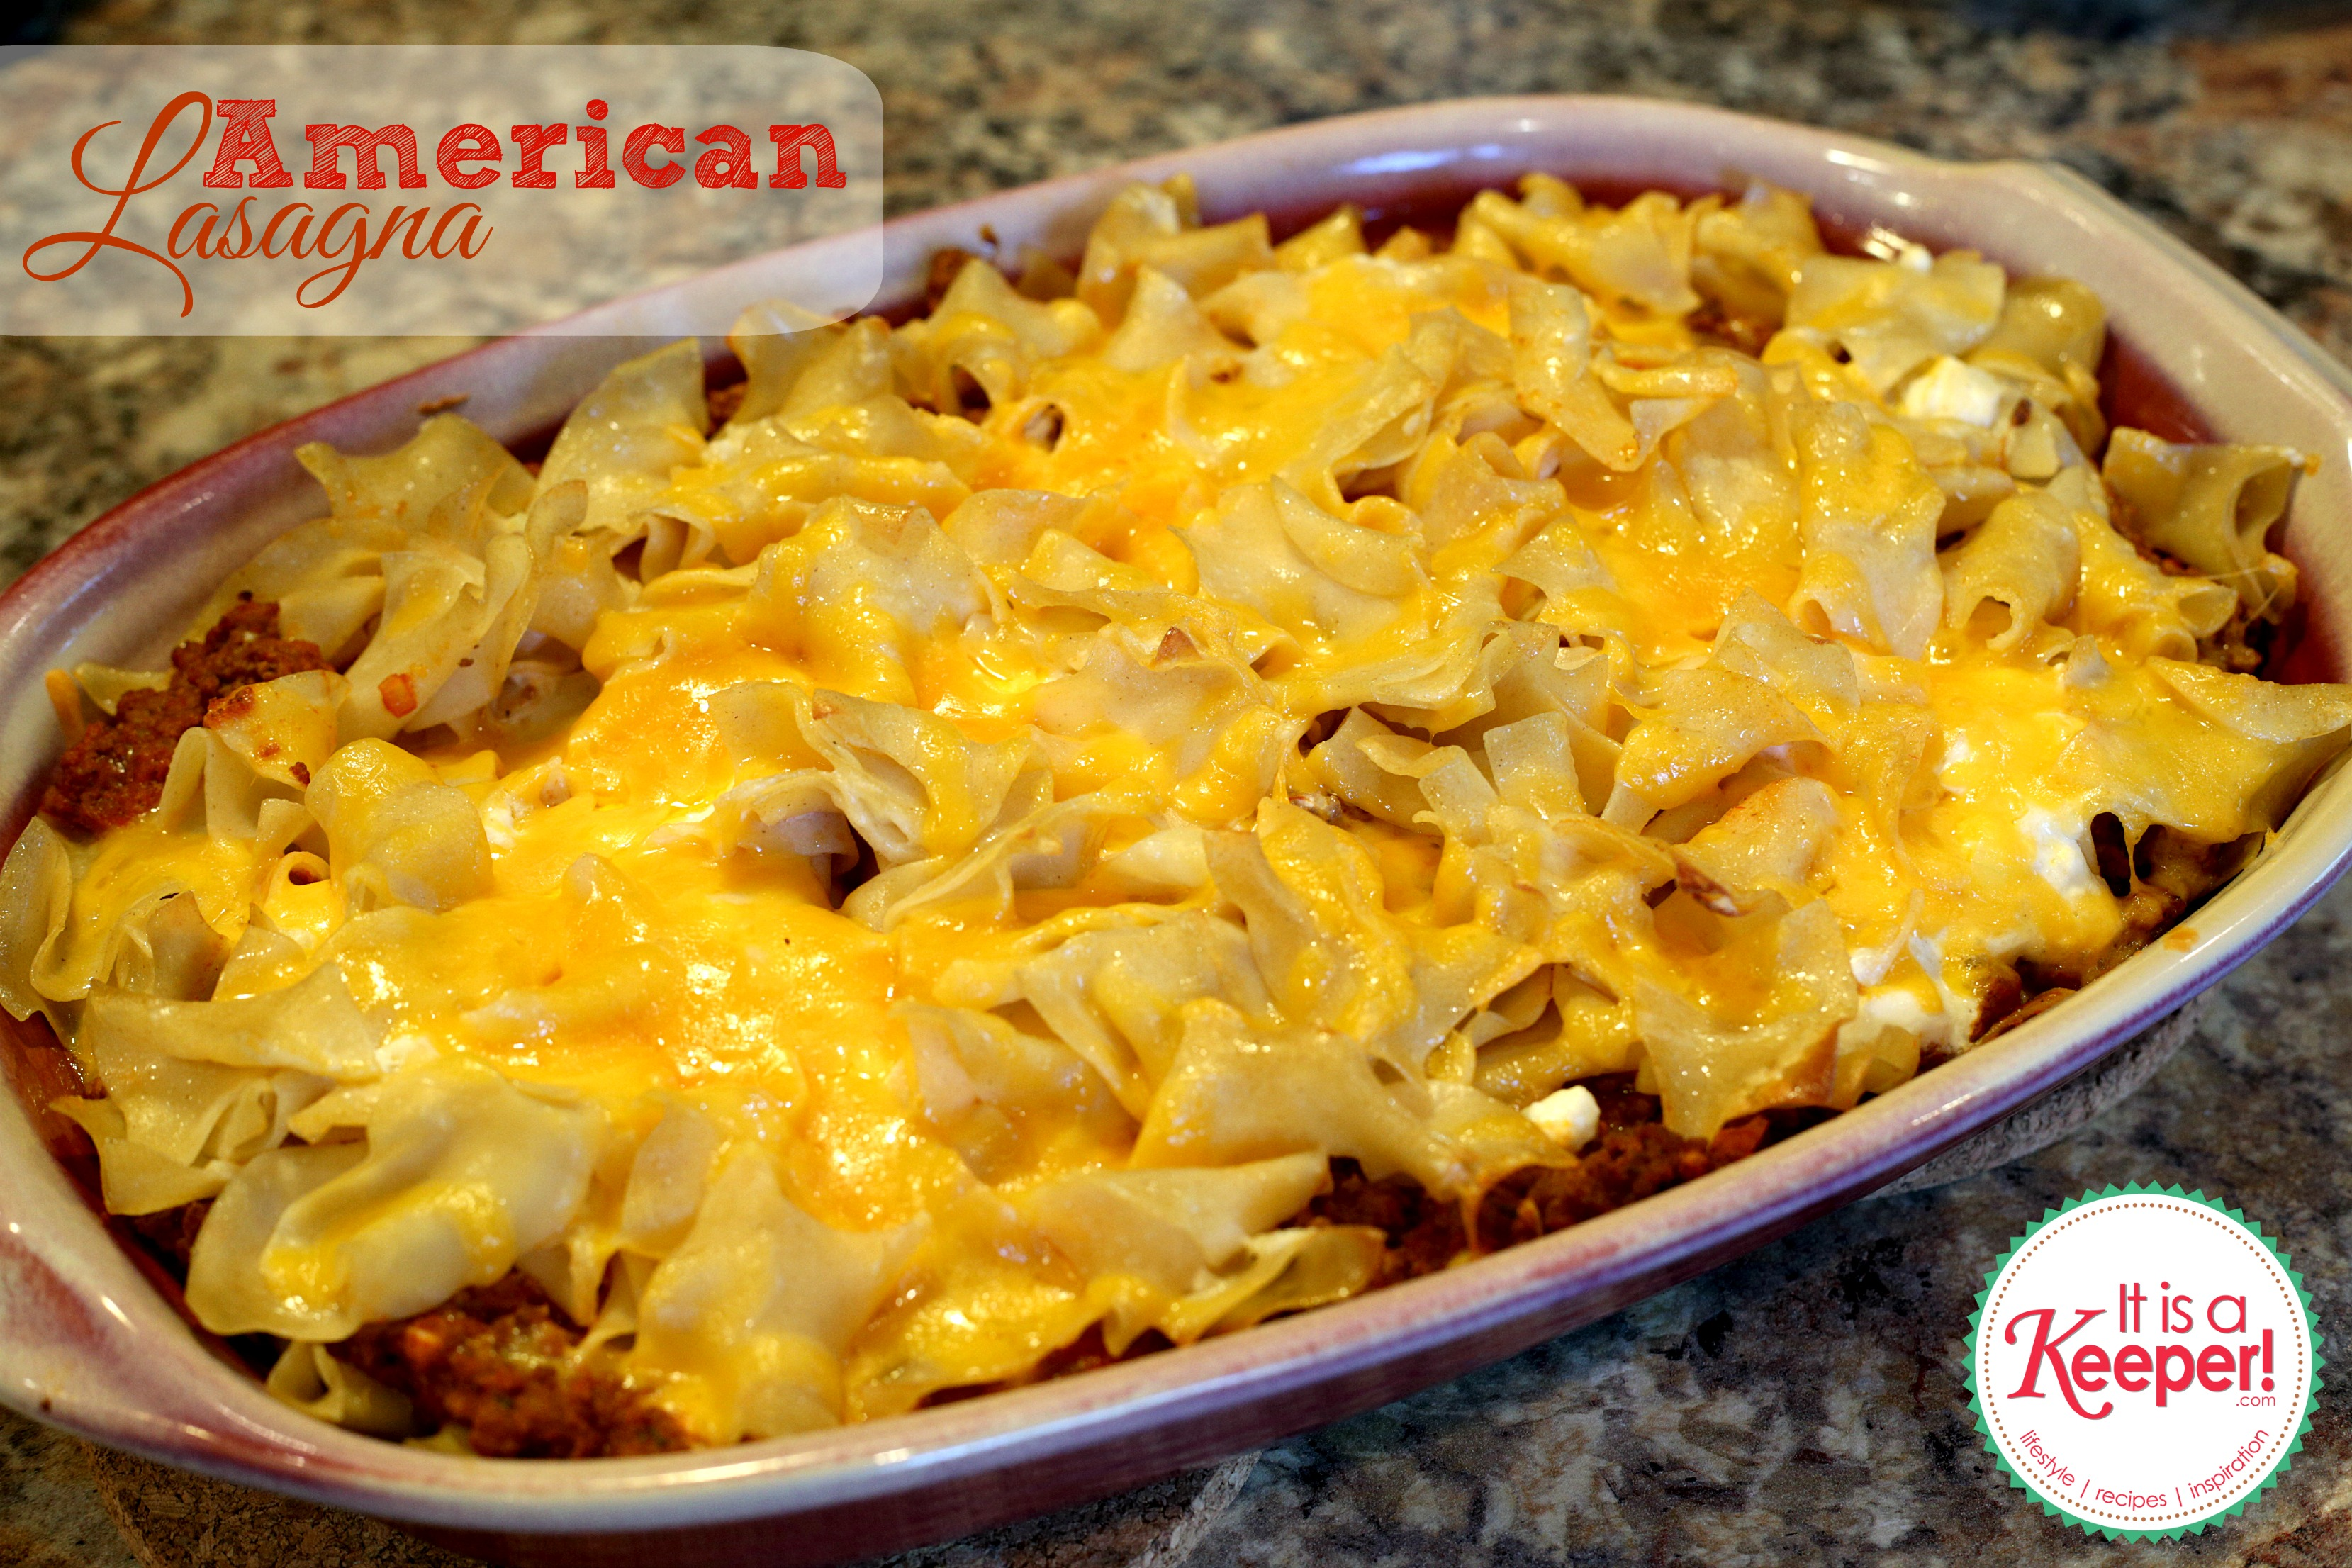 Easy Dinner Ideas: American Lasagna - it's a keeper